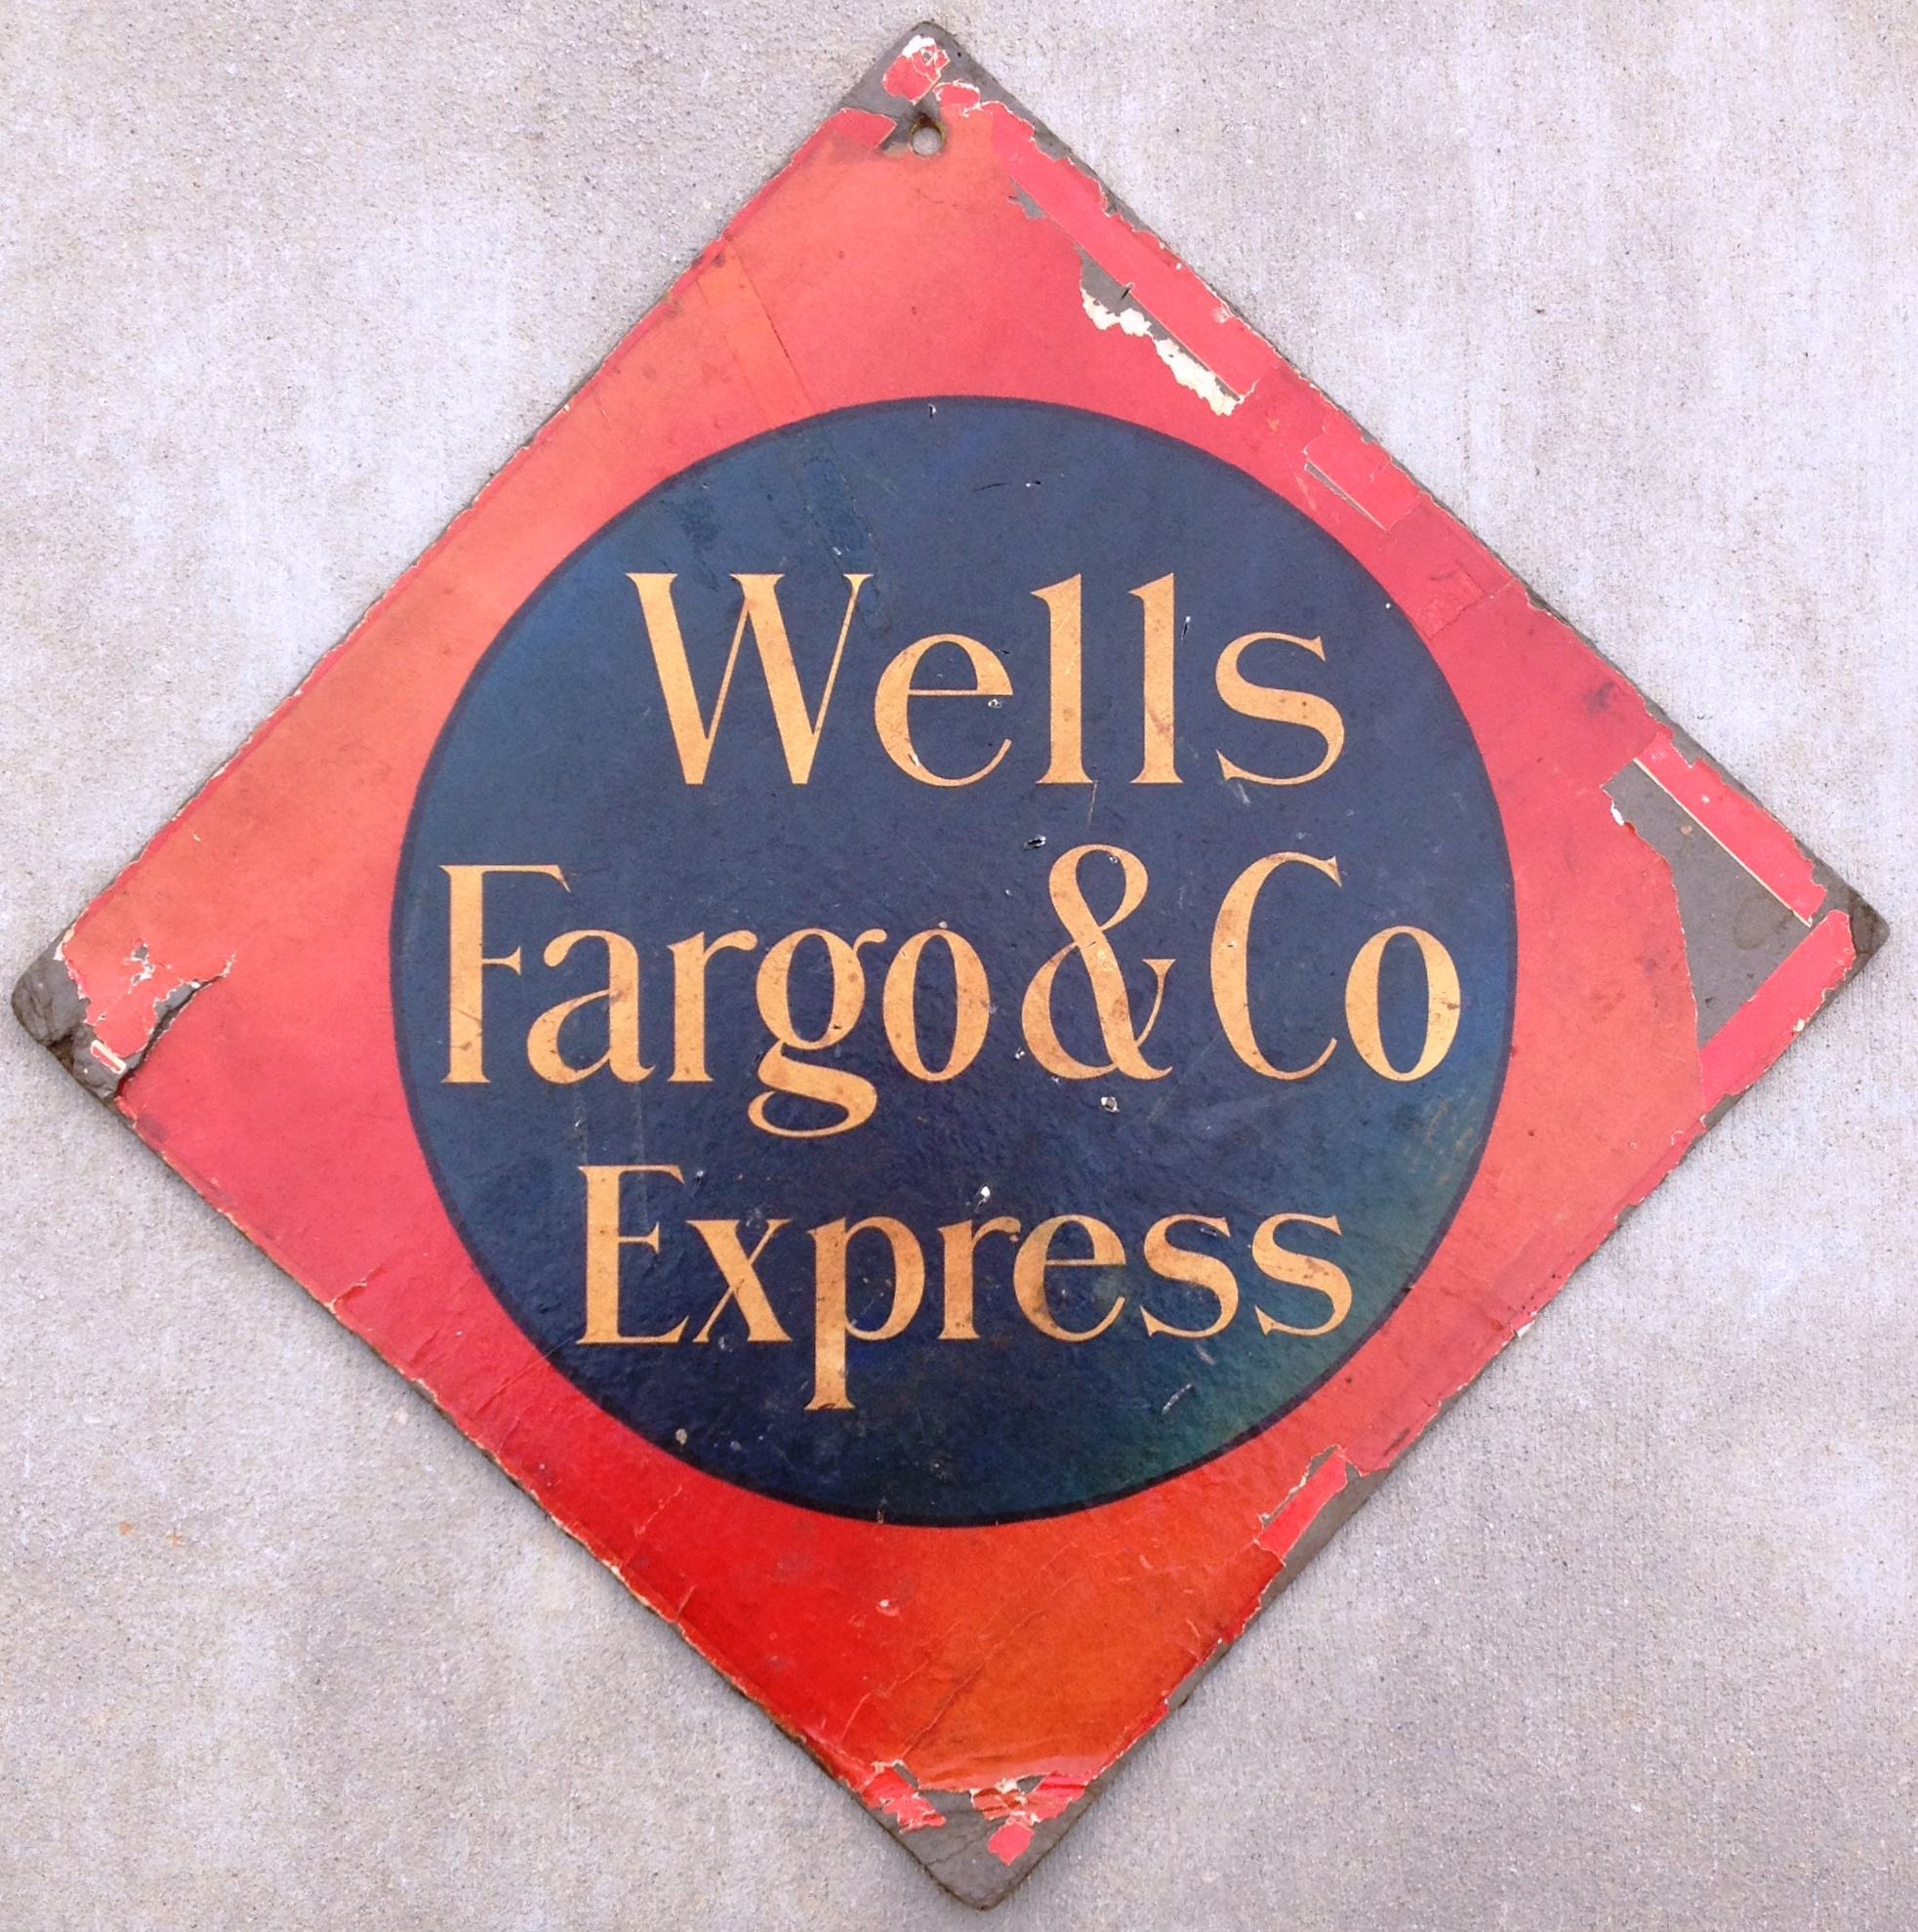 Wells Fargo & Co Express 1911 Call Card